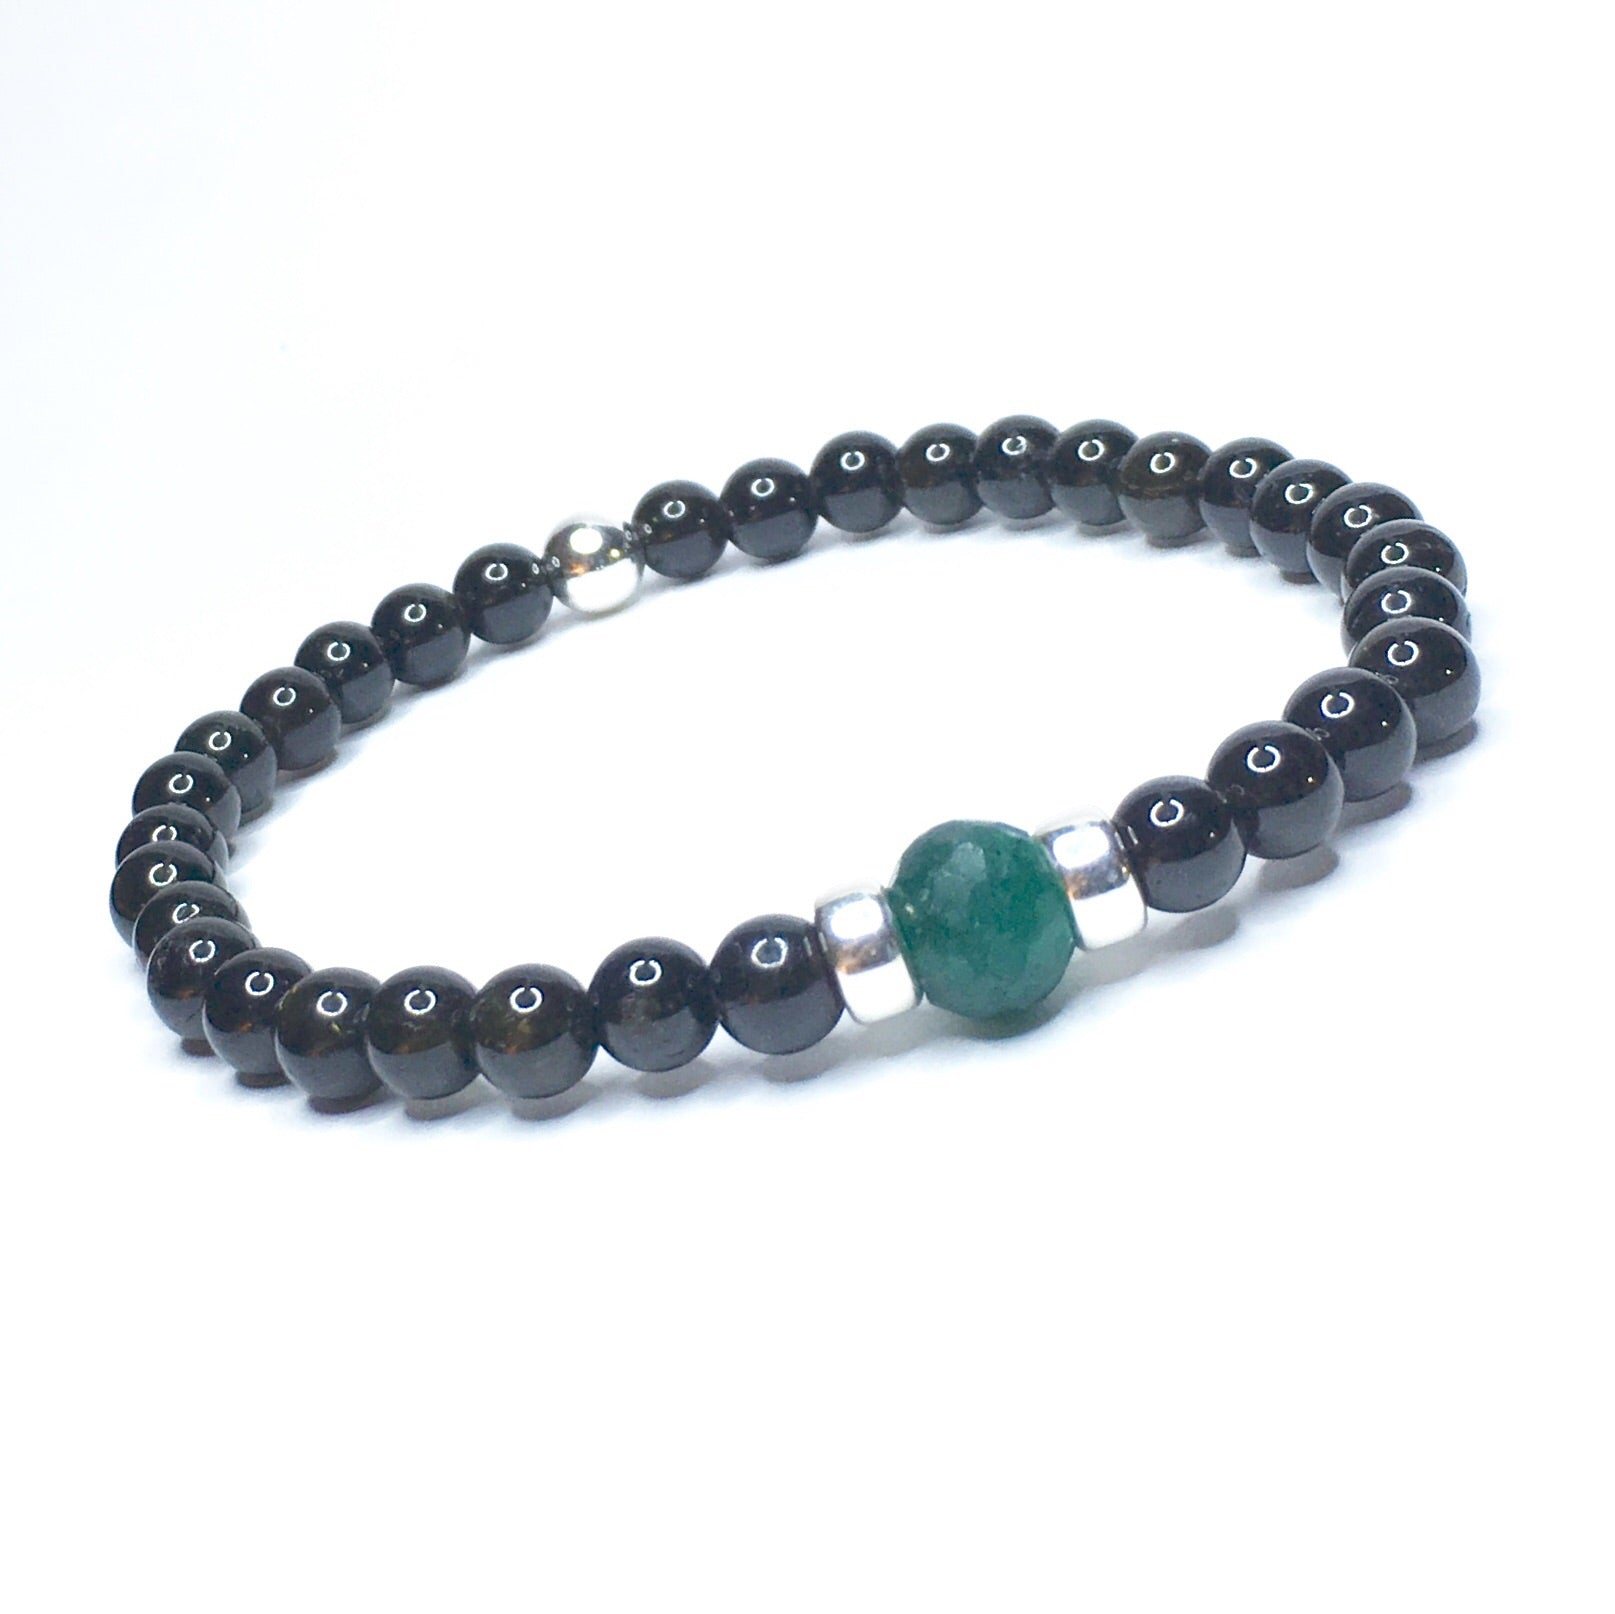 TOURMALINE + EMERALD - LITTLE GEM COLLECTION - SIMPLY SOFIA